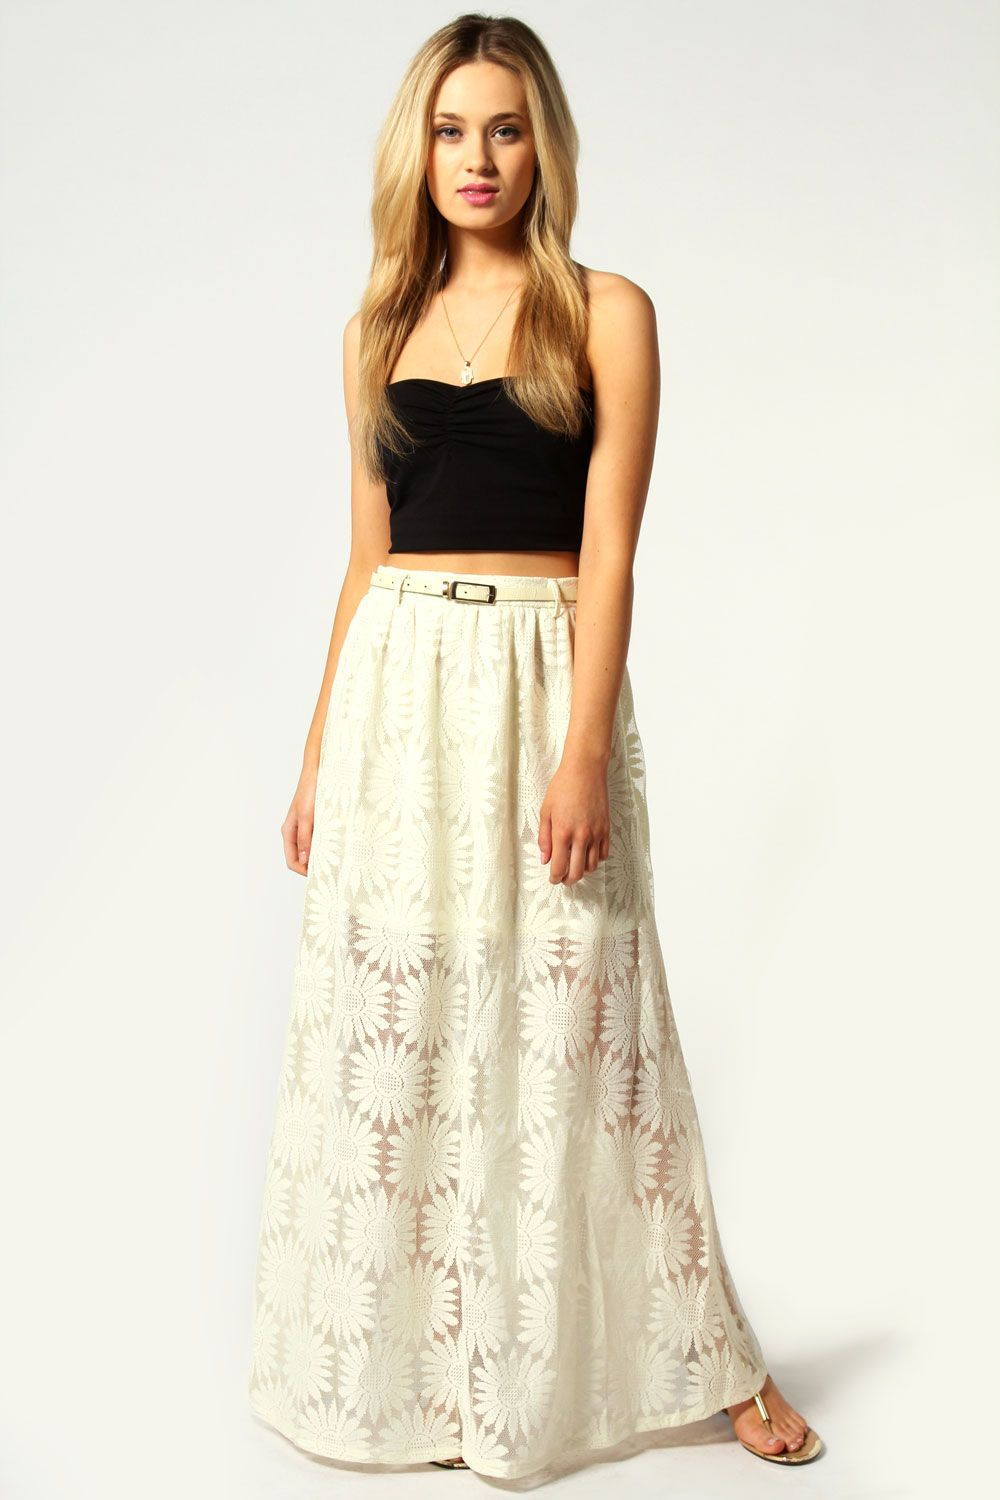 beautiful skirt | AVE STYLES PERSONAL FAVES | Pinterest ...